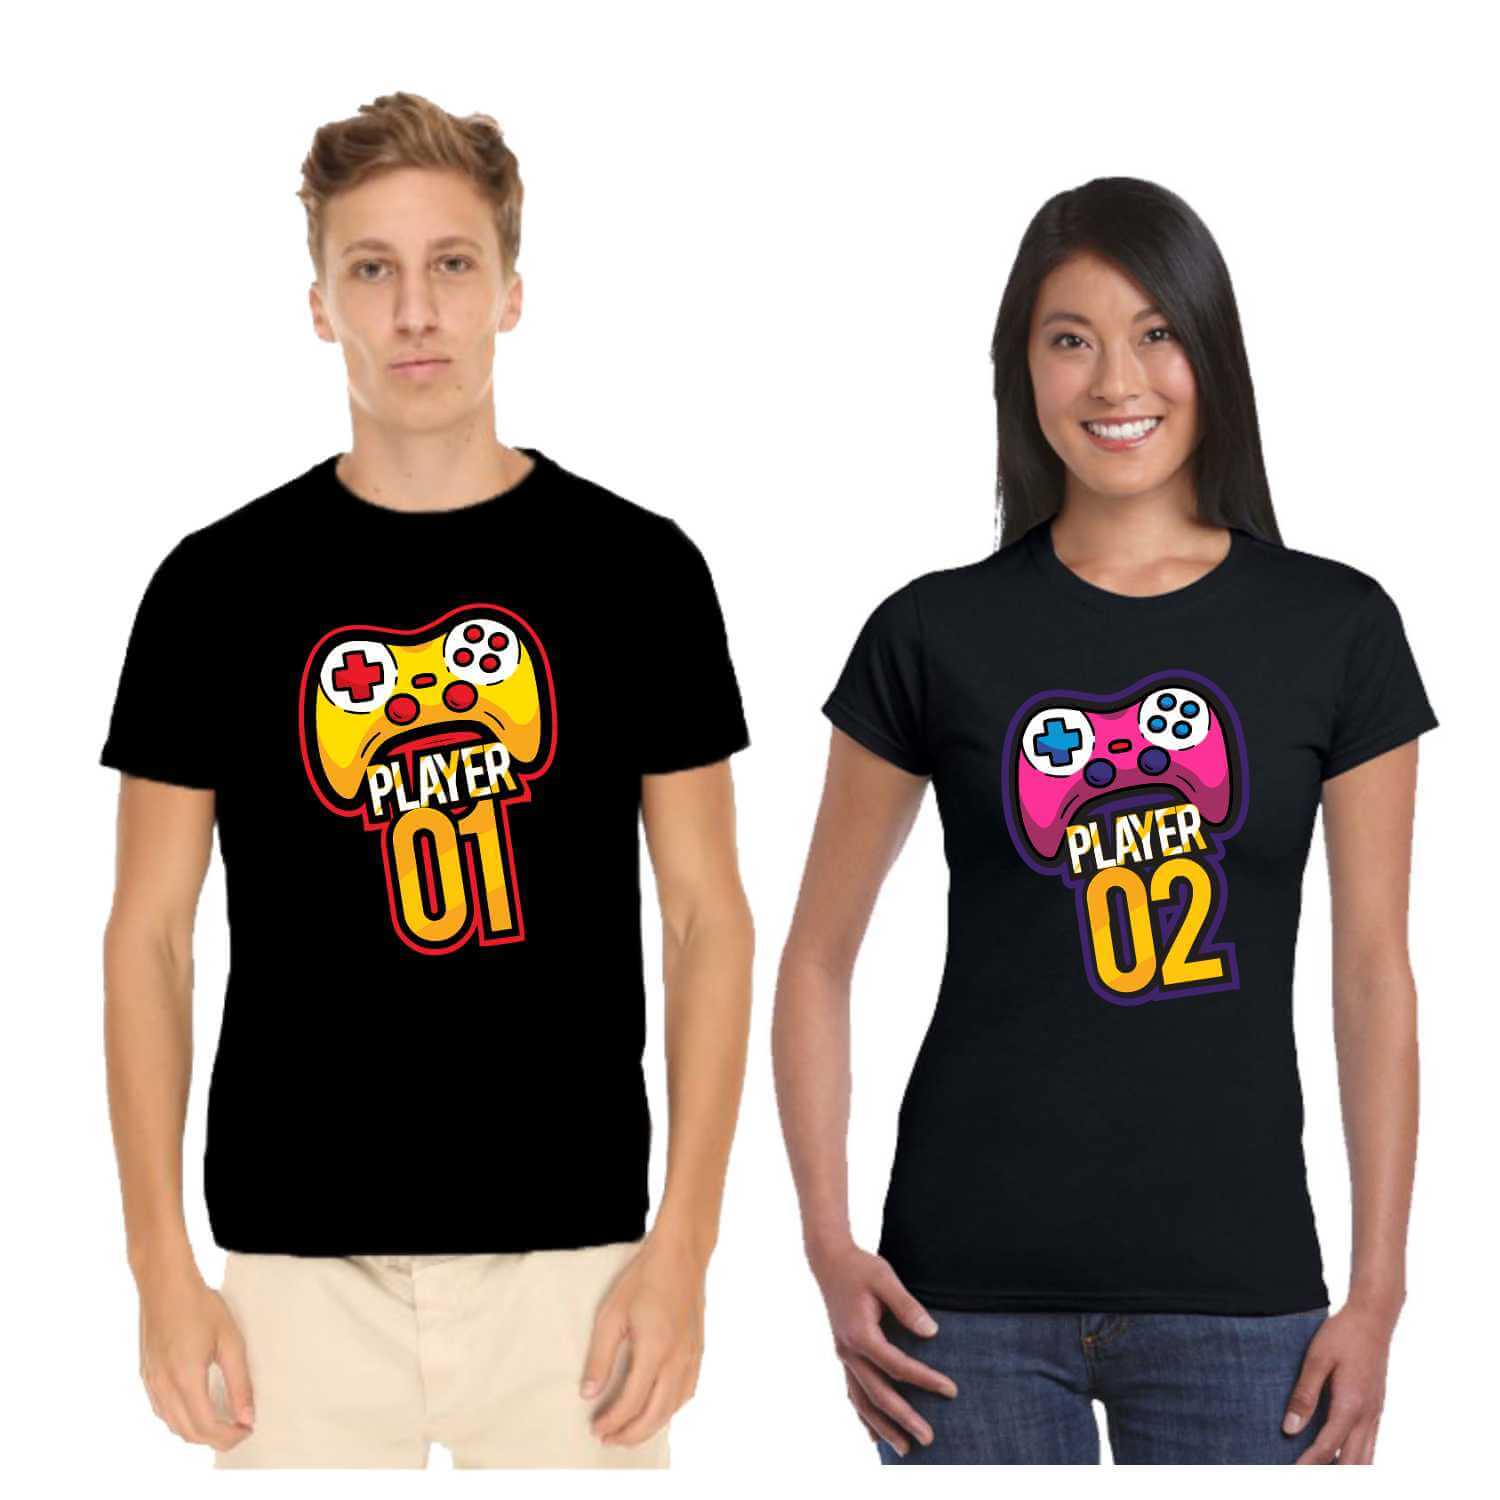 228da6b299 Player 1 Player 2 Couple T-shirt for Valentines Day   Giftsmate